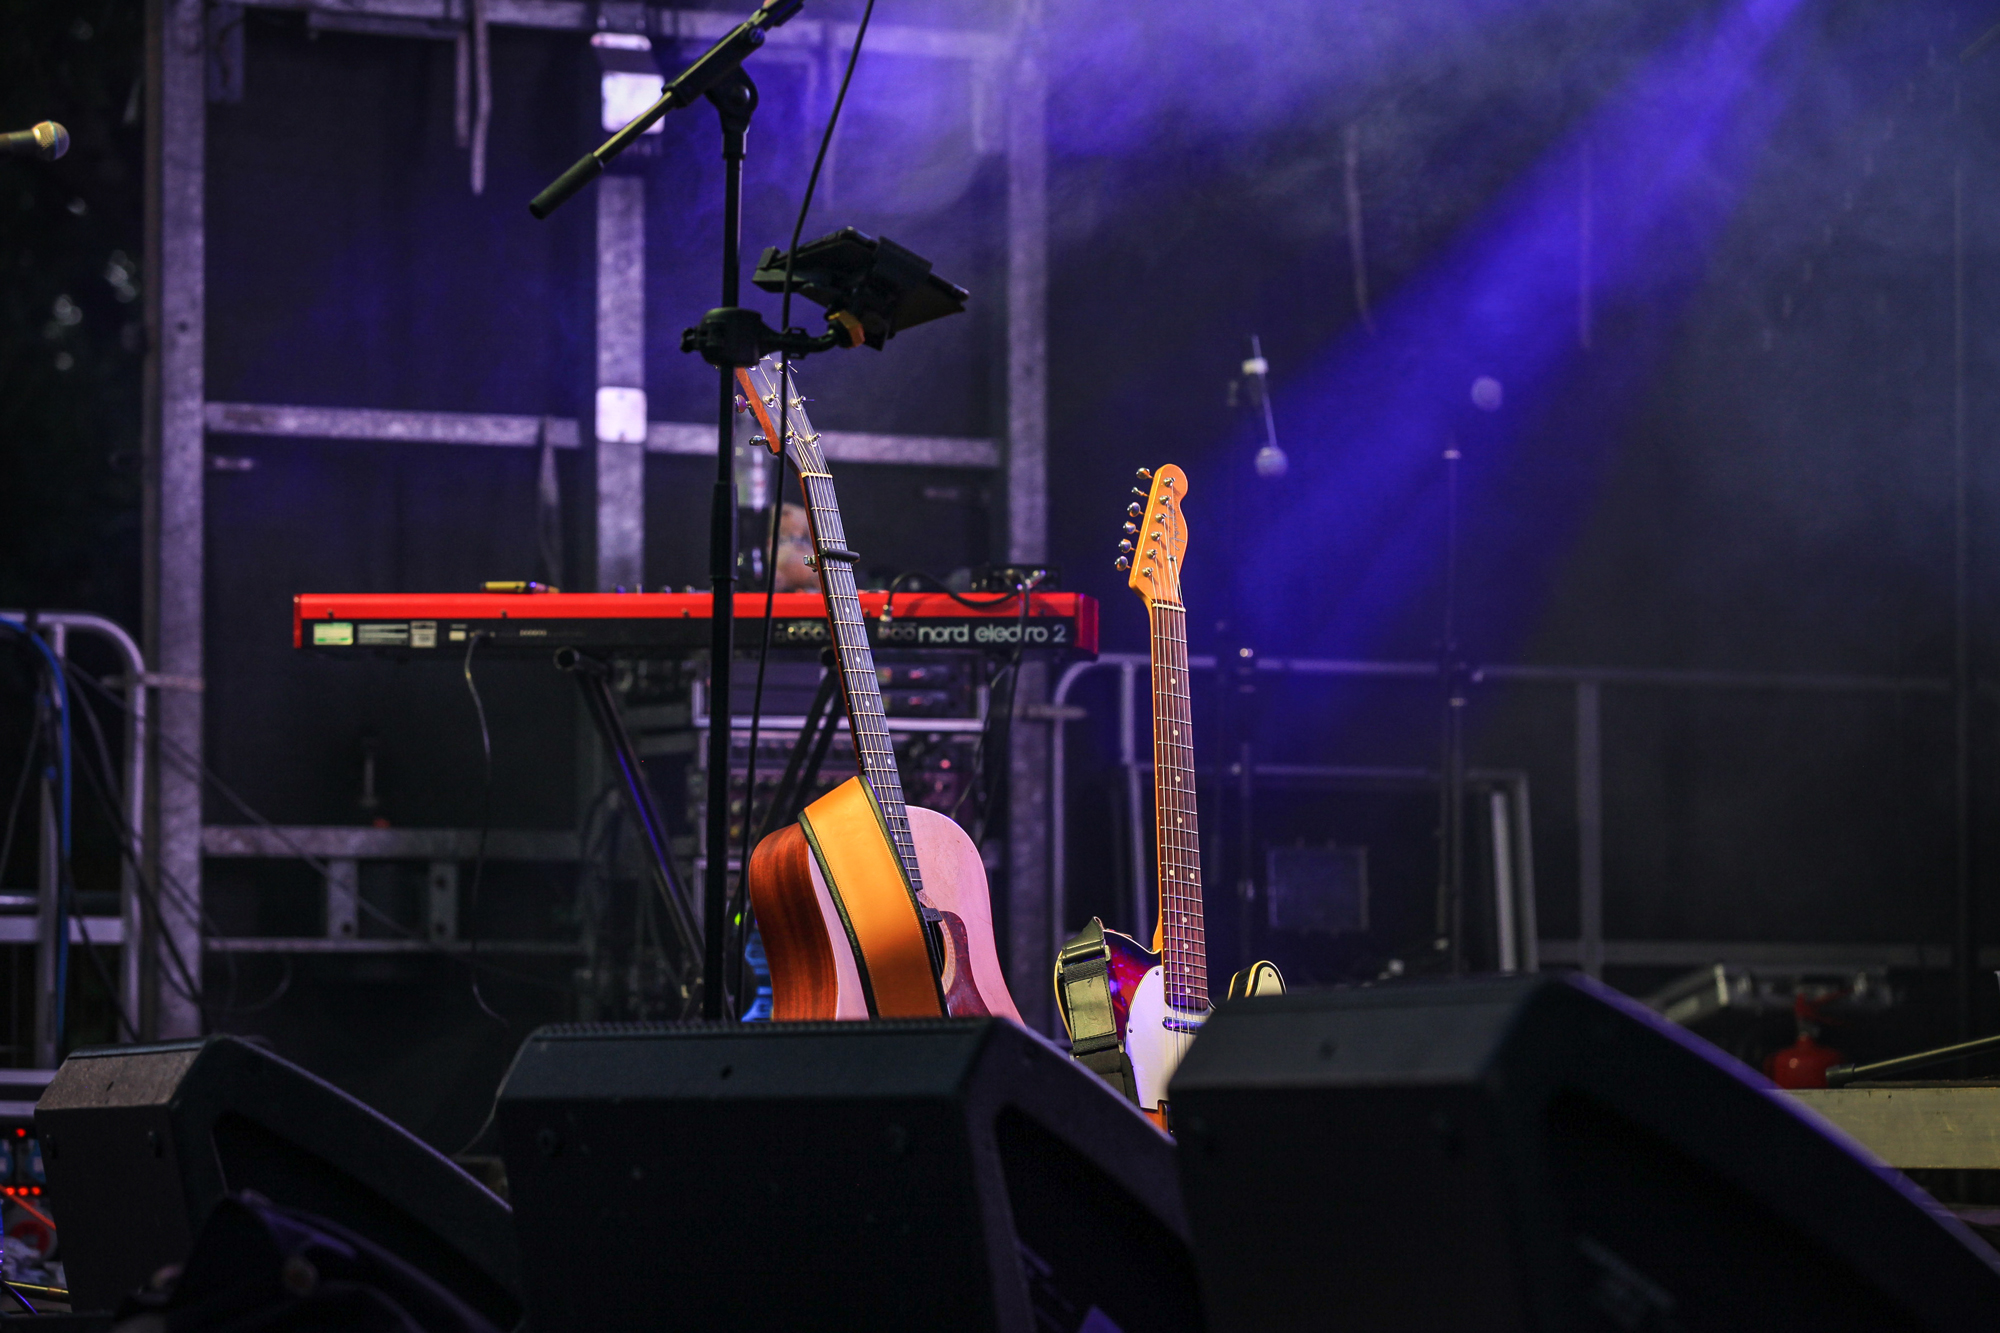 instruments and guitar on stage at Dartmouth music festival